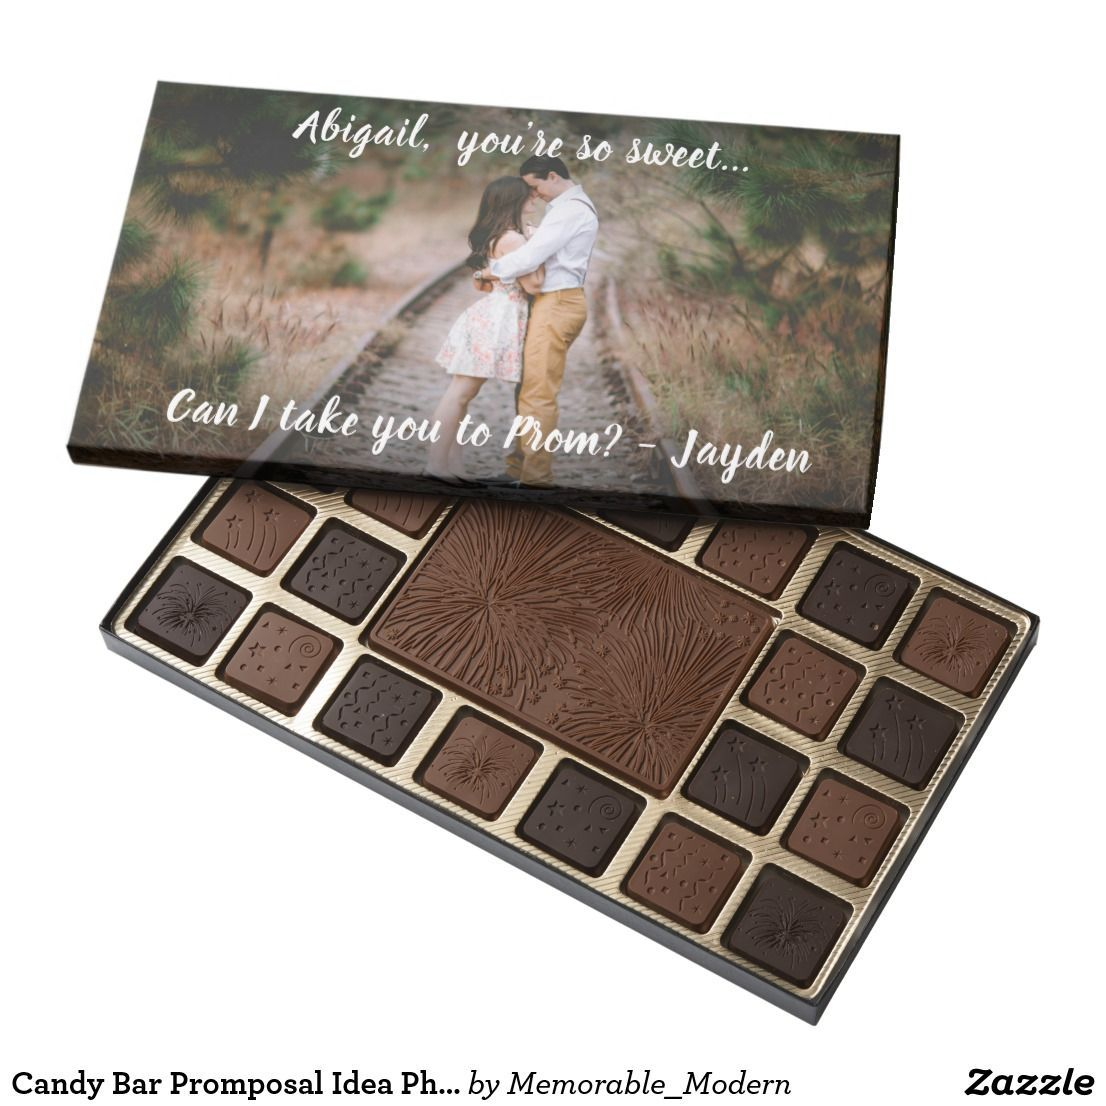 1 Photo Prom or HOCO Proposal Candy Promposal Idea 45 Piece Box Of Chocolates | Zazzle.com #hocoproposalsideas Promposal Box Of Chocolates - Ask a girl or boy to prom in style with this sweet personalized photo promposal chocolate candy bar box. Design features a modern calligraphy script typography, customized message,  & picture of your choice. All the text is also simple to customize, so it can easily be used for any dance, such as homecoming, winter formal, etc. A cute alternative to a promp #hocoproposalsideas